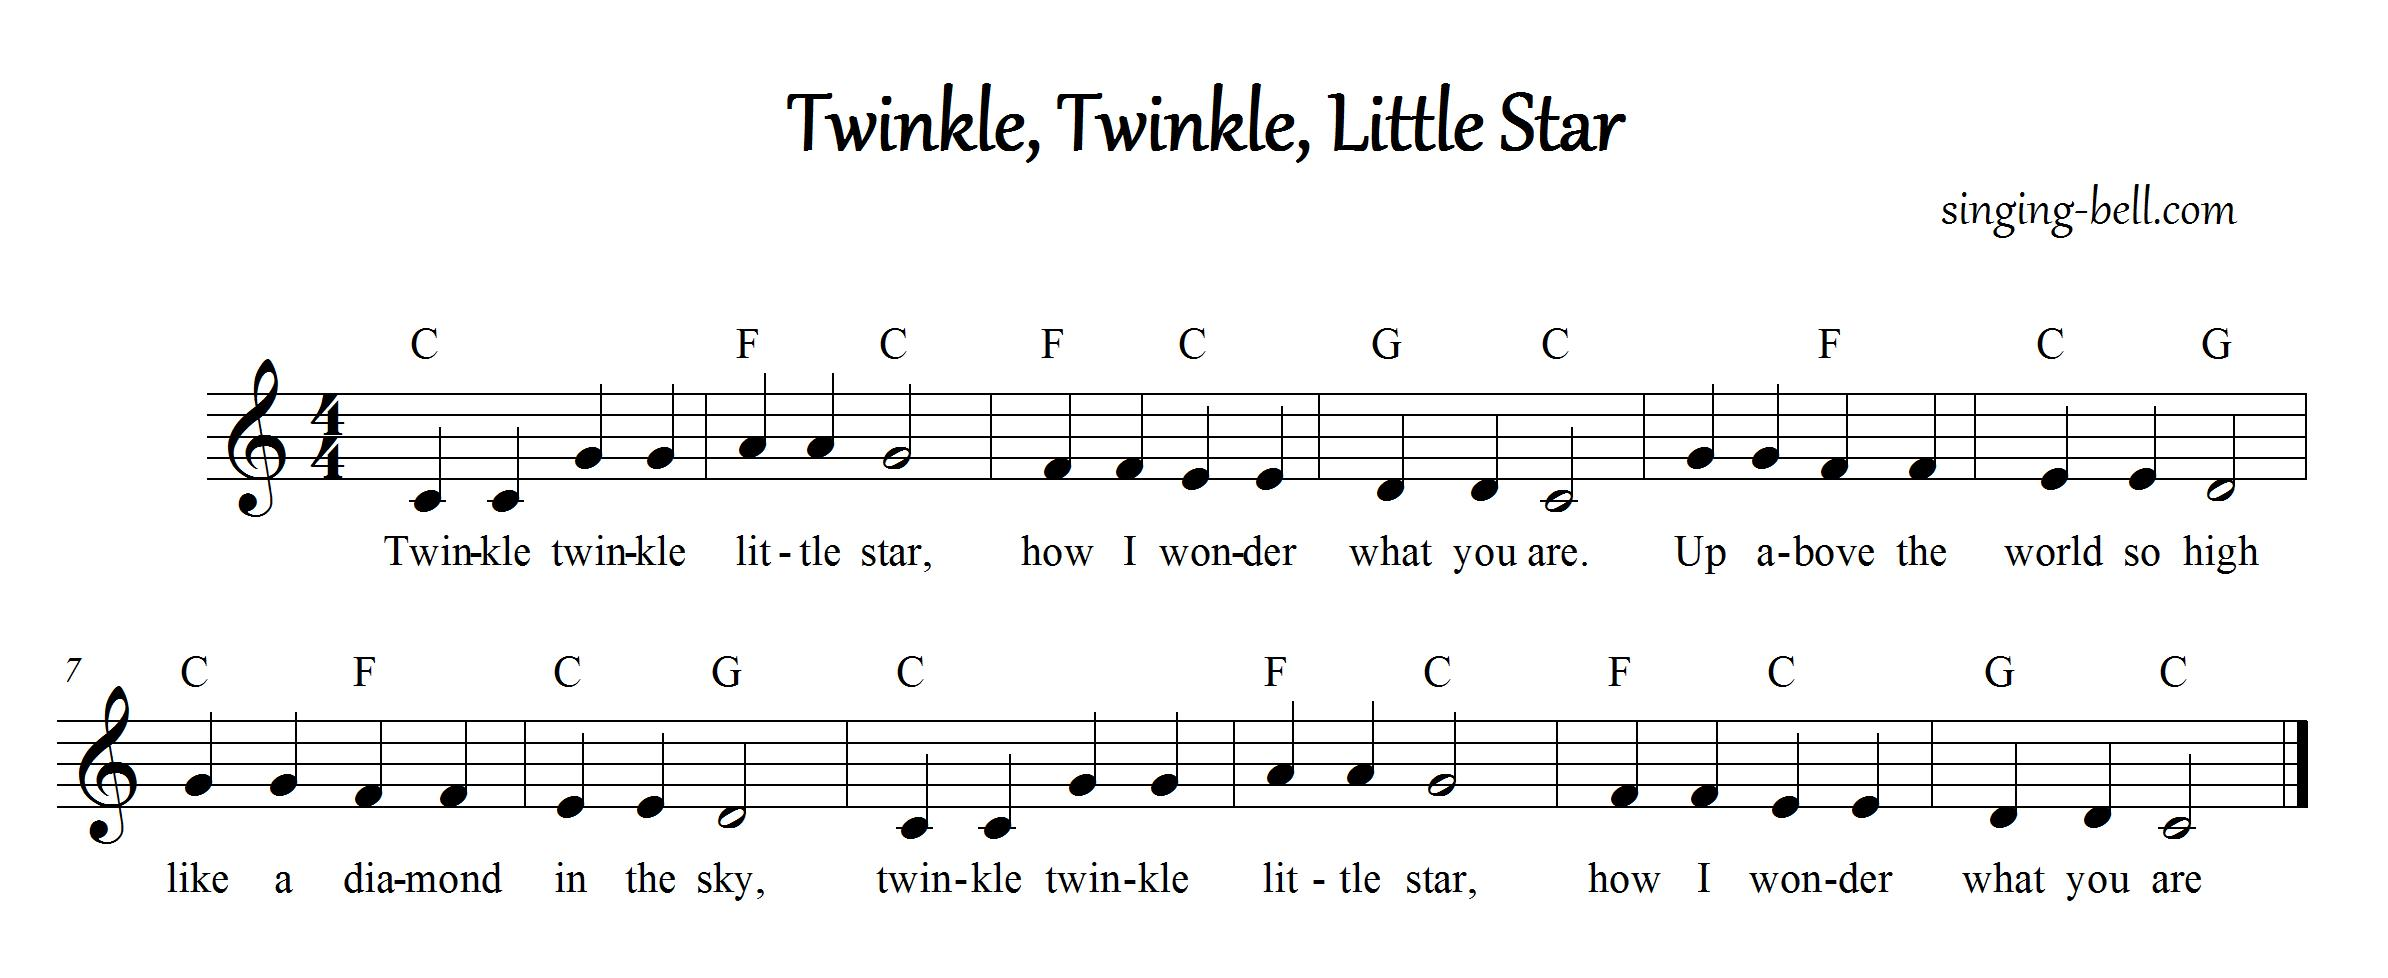 Free Nursery Rhymes : Twinkle, Twinkle, Little Star - free mp3 download